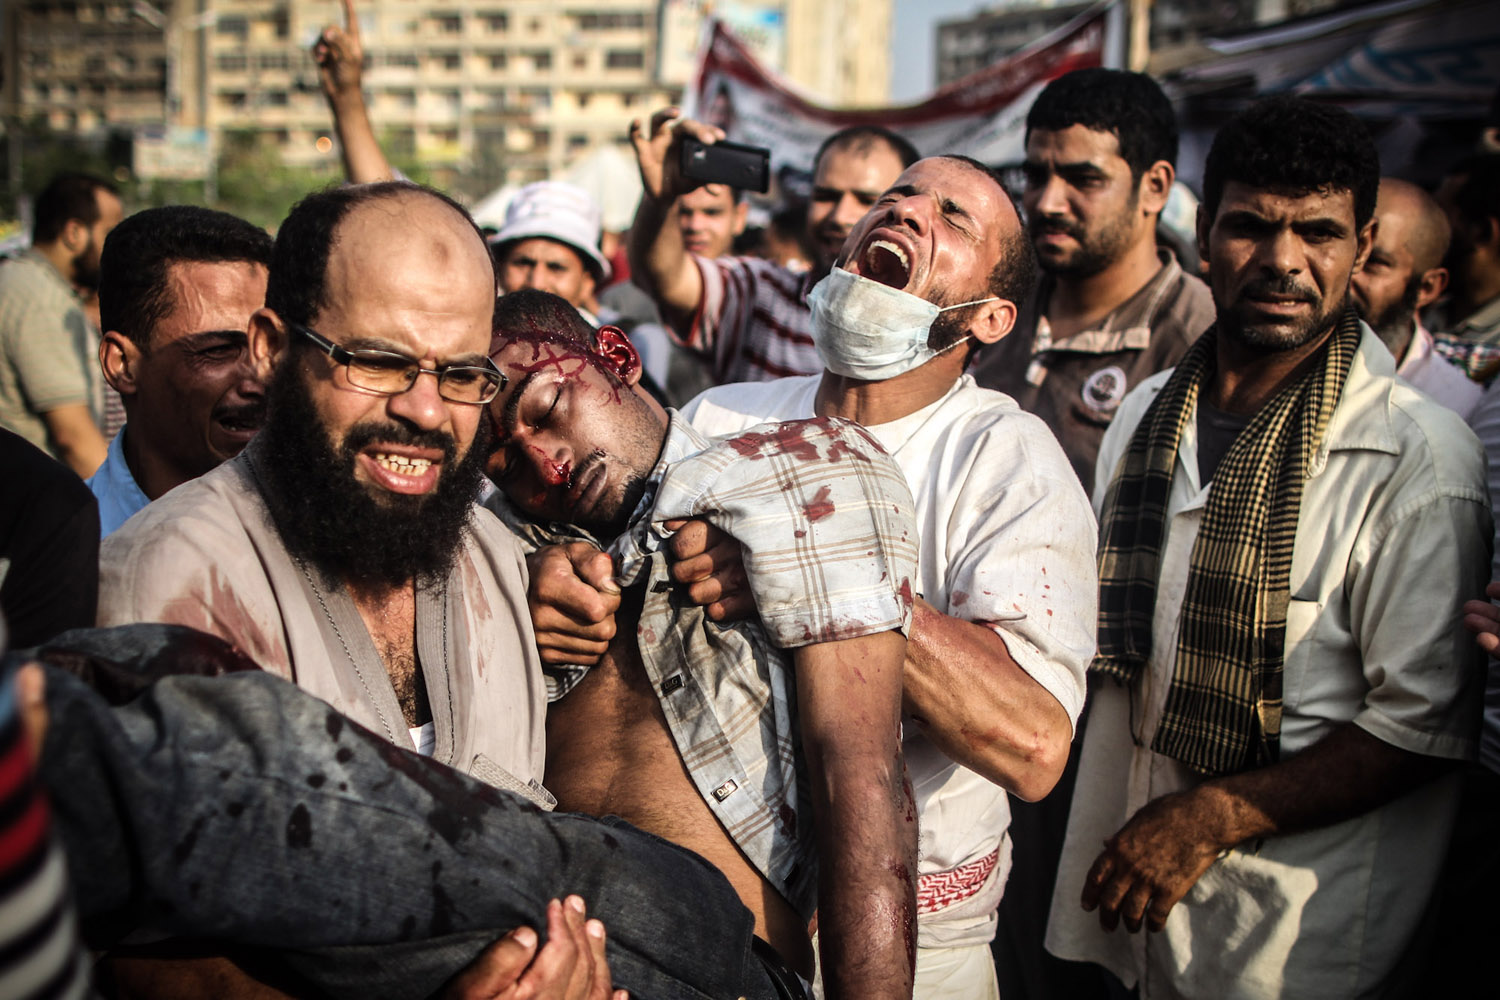 July 27, 2013. Morsi supporters carry a man shot in the head outside the makeshift hospital in Rabaa Square.